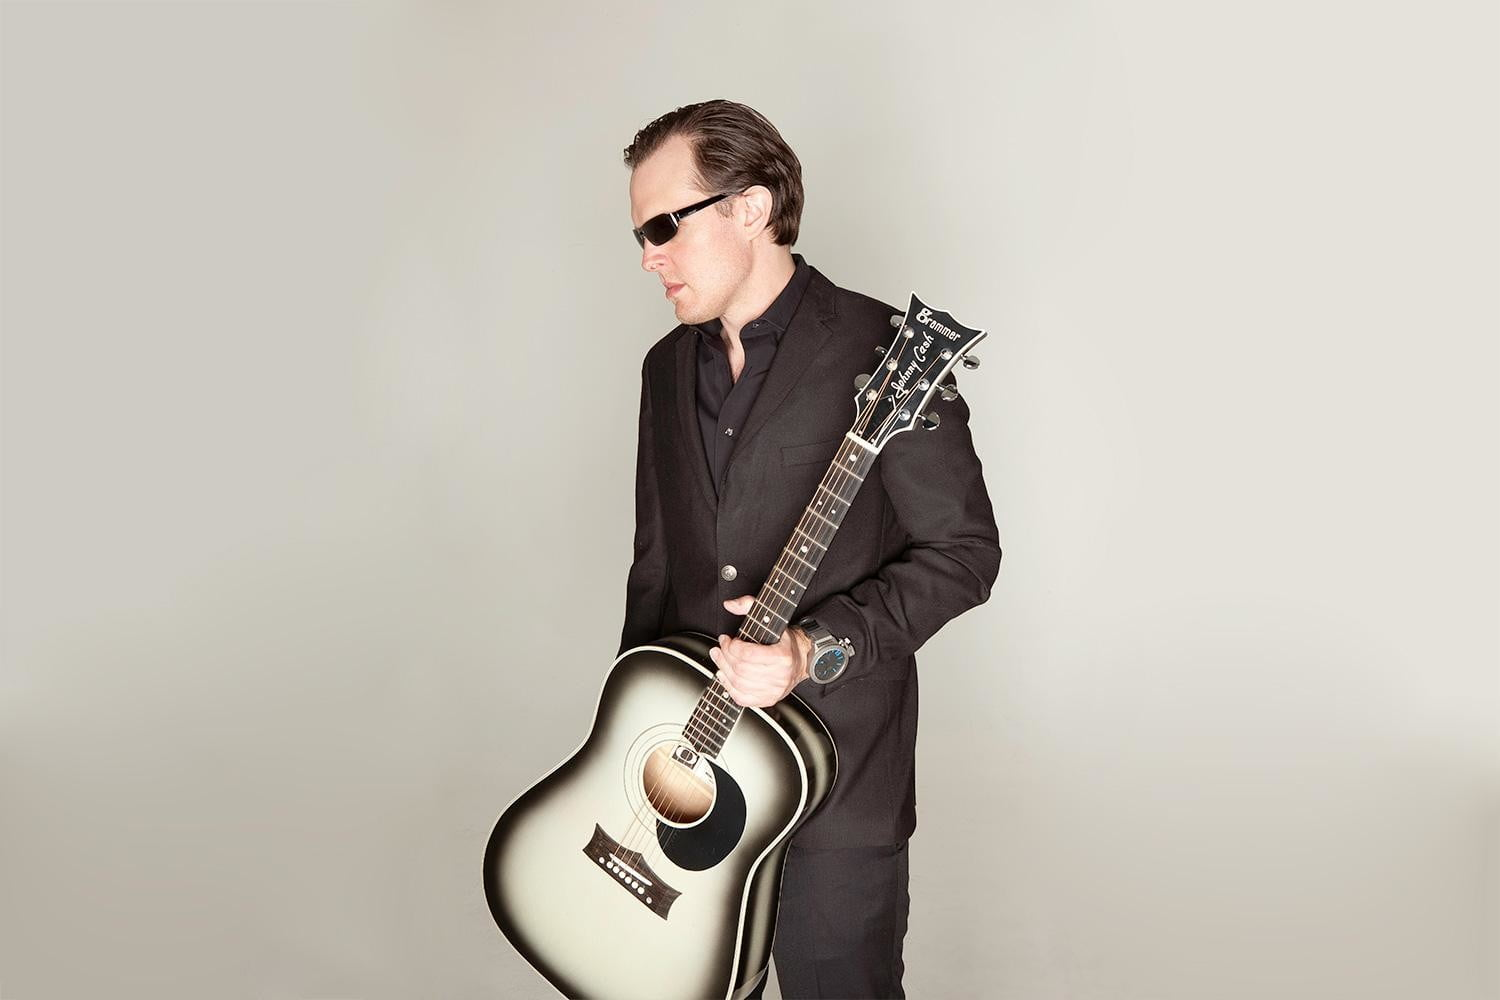 The Audiophile Joe Bonamassa